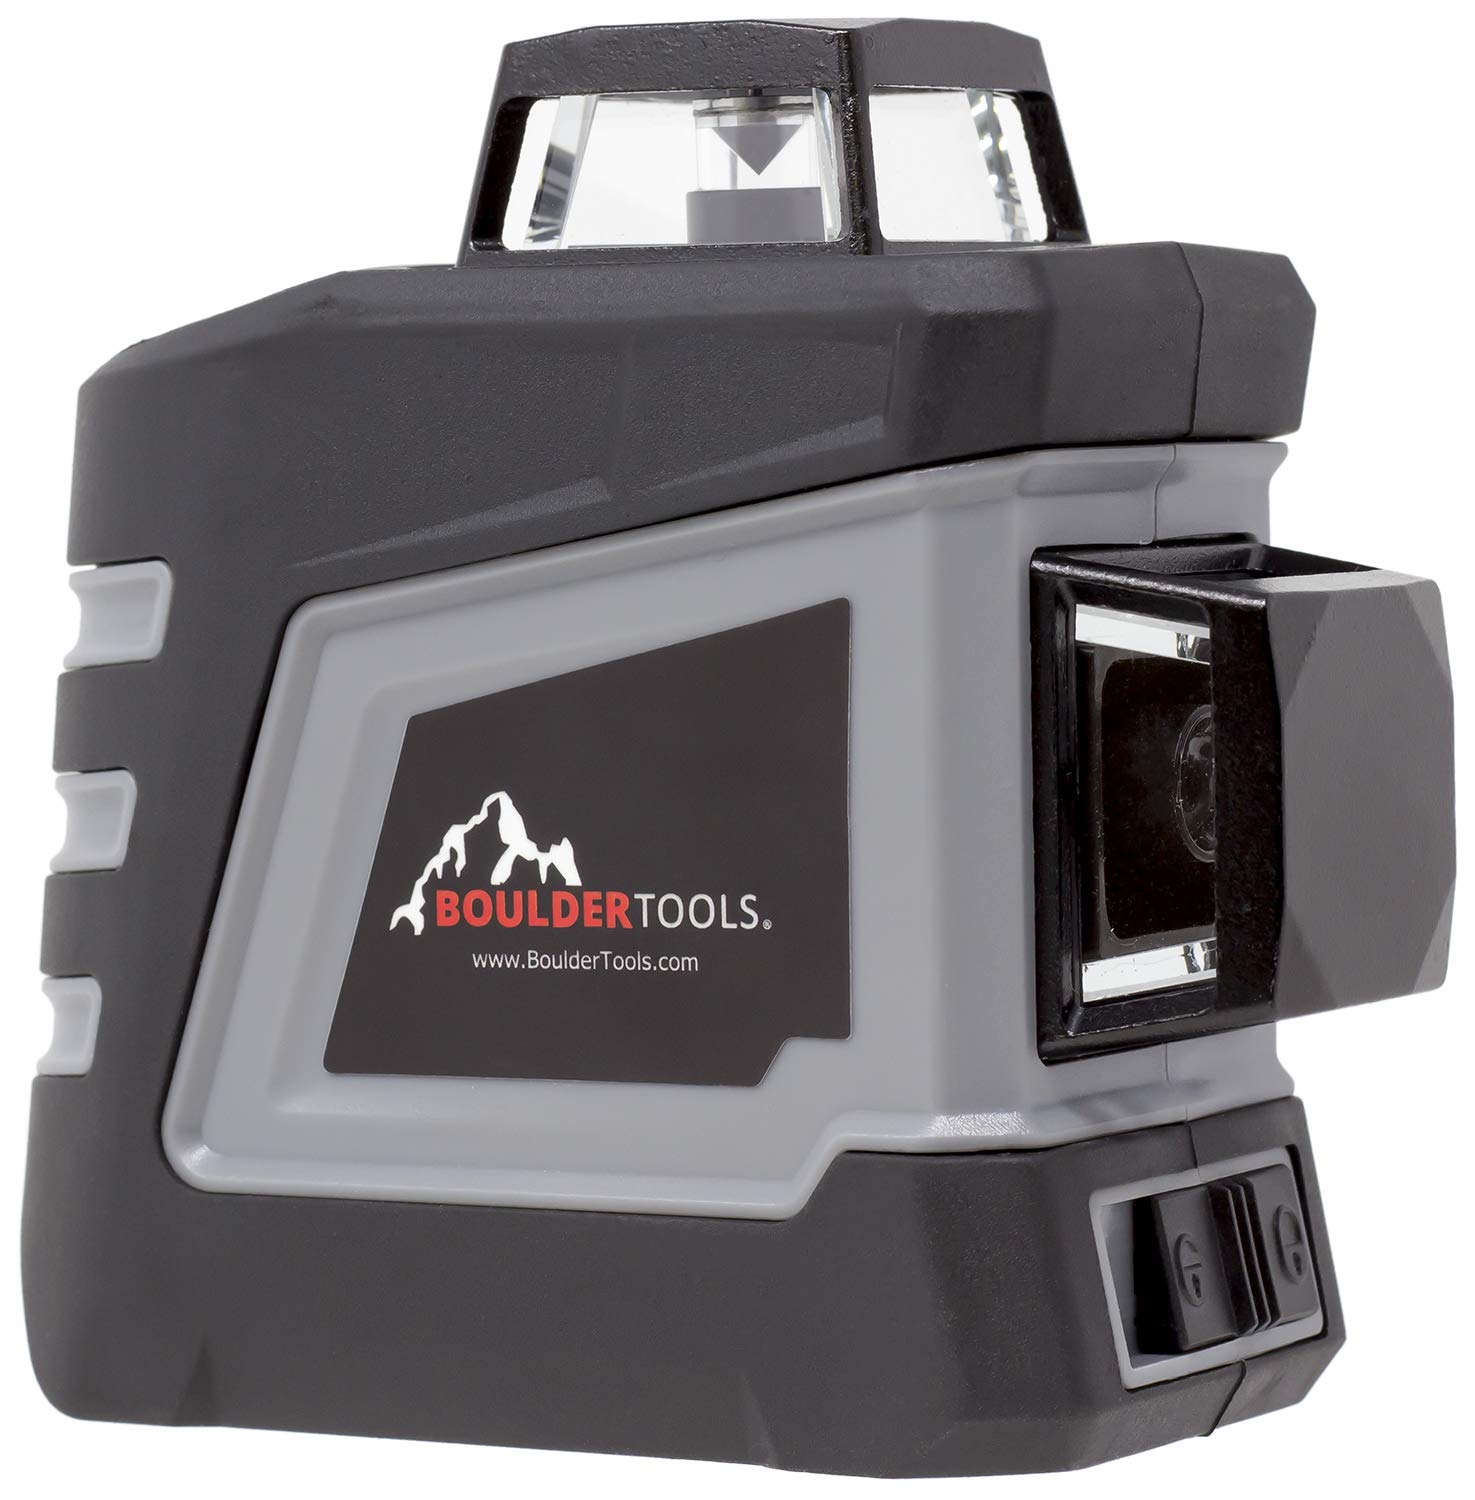 Boulder Tools Laser Level With Tripod, Self-Leveling, Bright, 100 Foot 360-Degree Horizontal And Vertical Cross Line